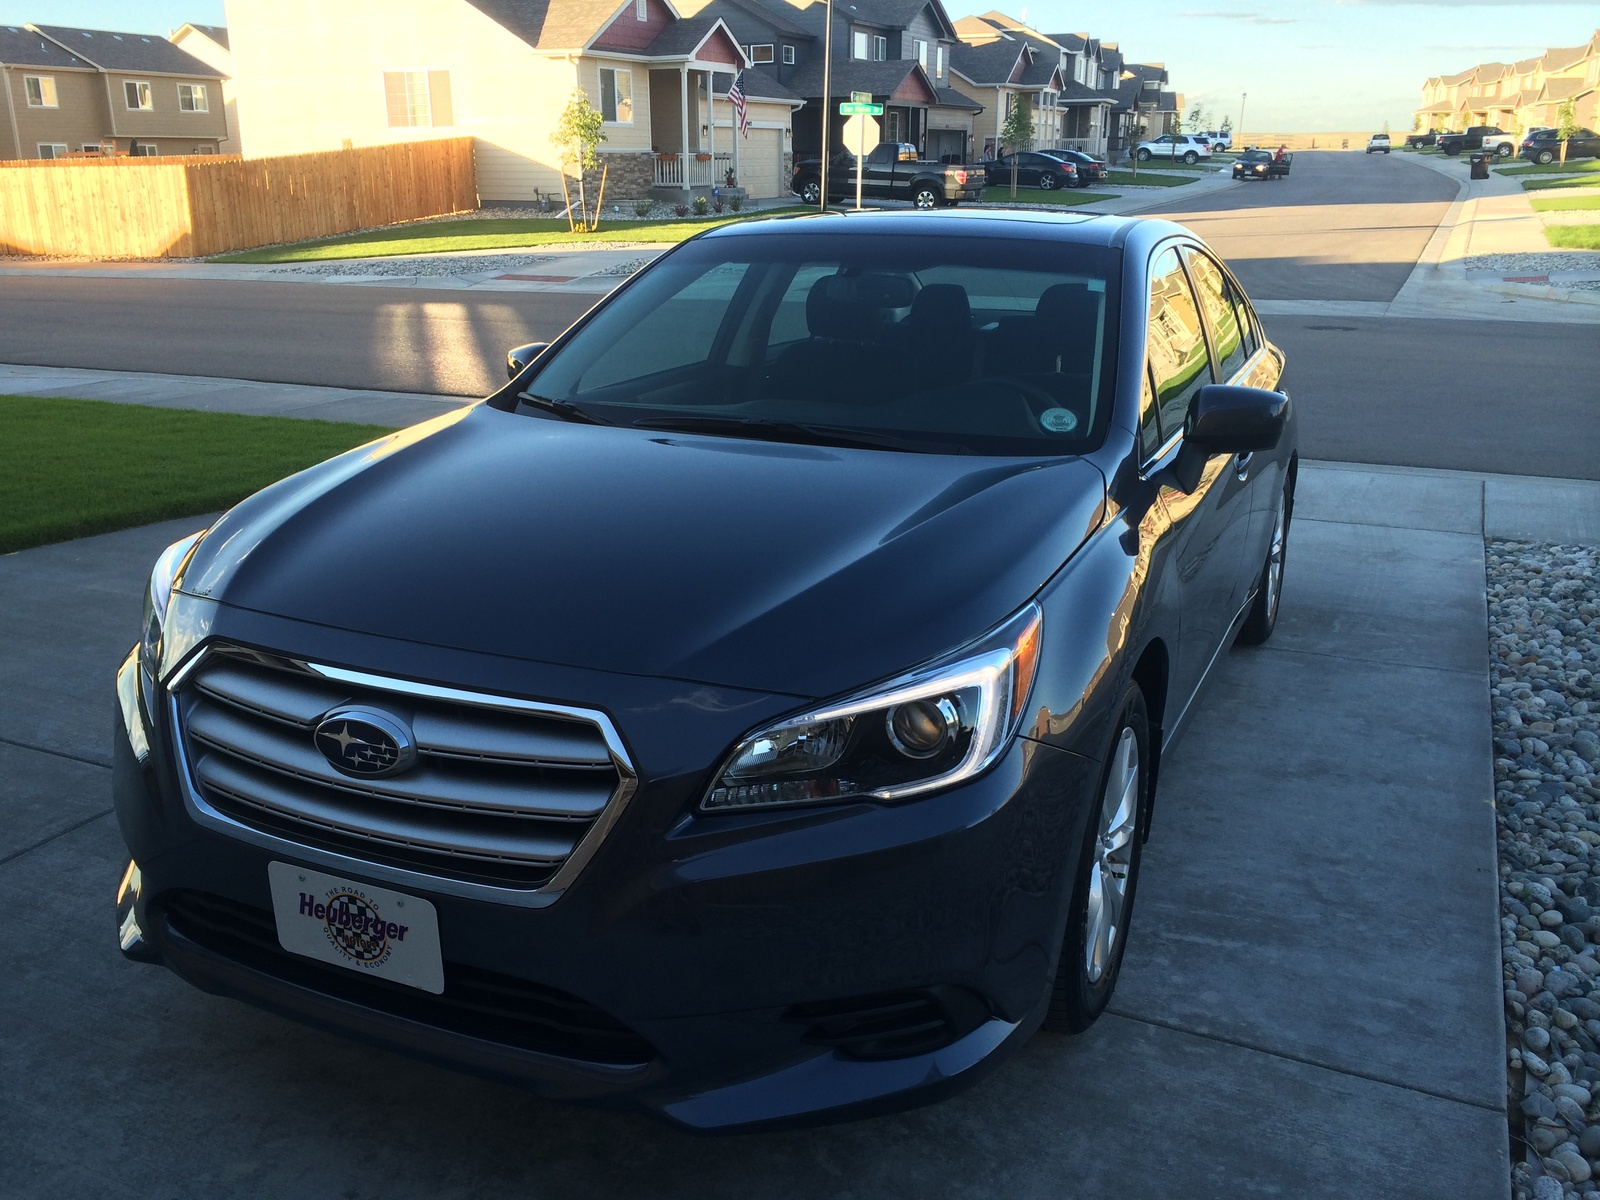 Picture of 2015 Subaru Legacy 2.5i